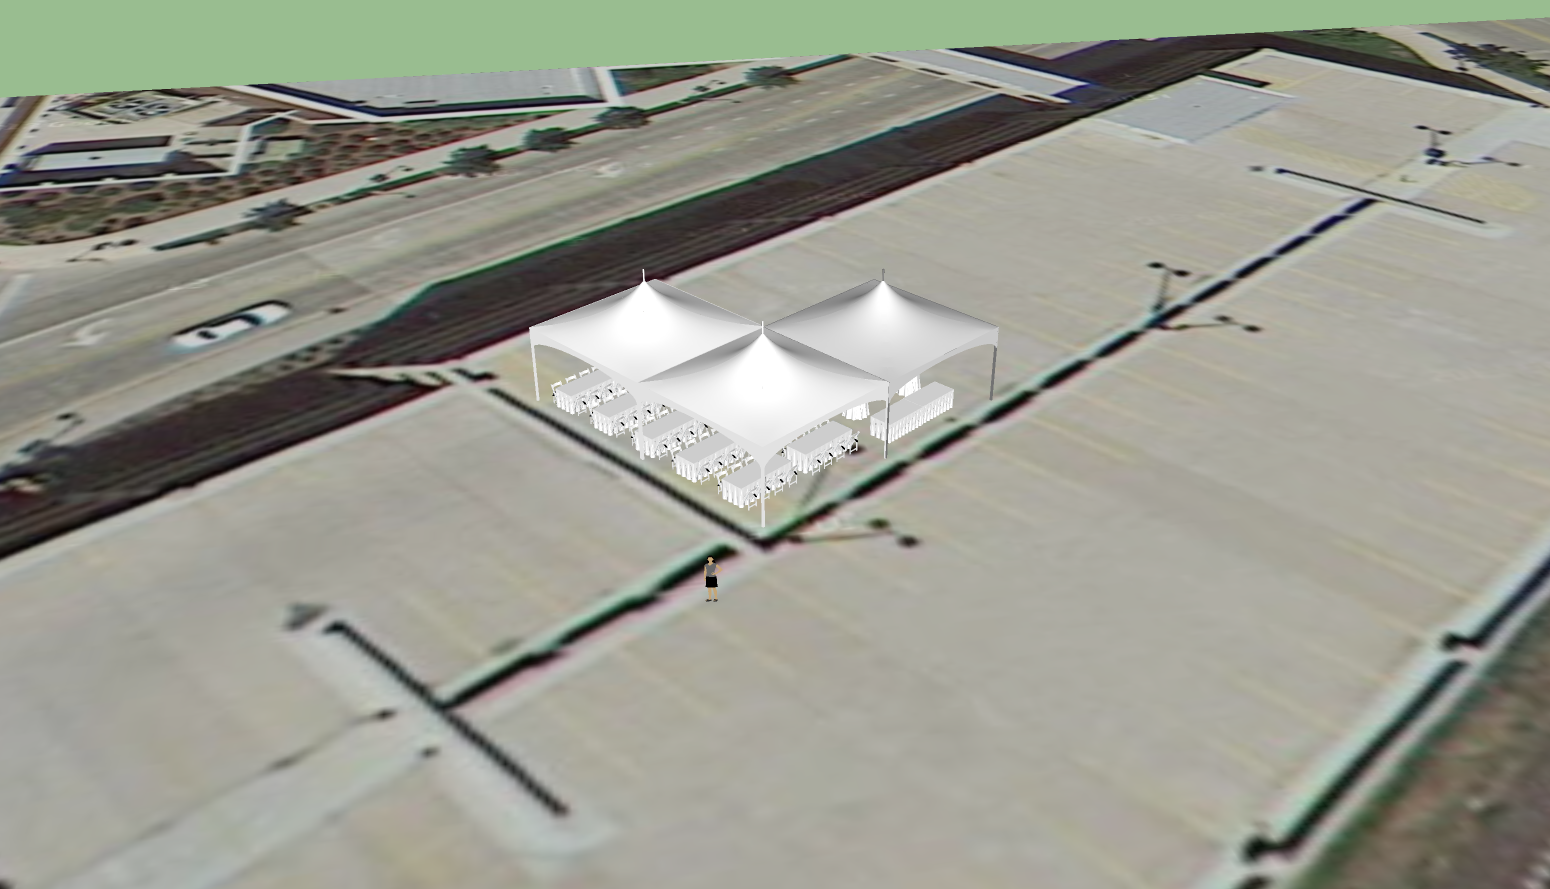 6.11.2015 Marriot Rooftop 20x40 w 20x20 location 2.png